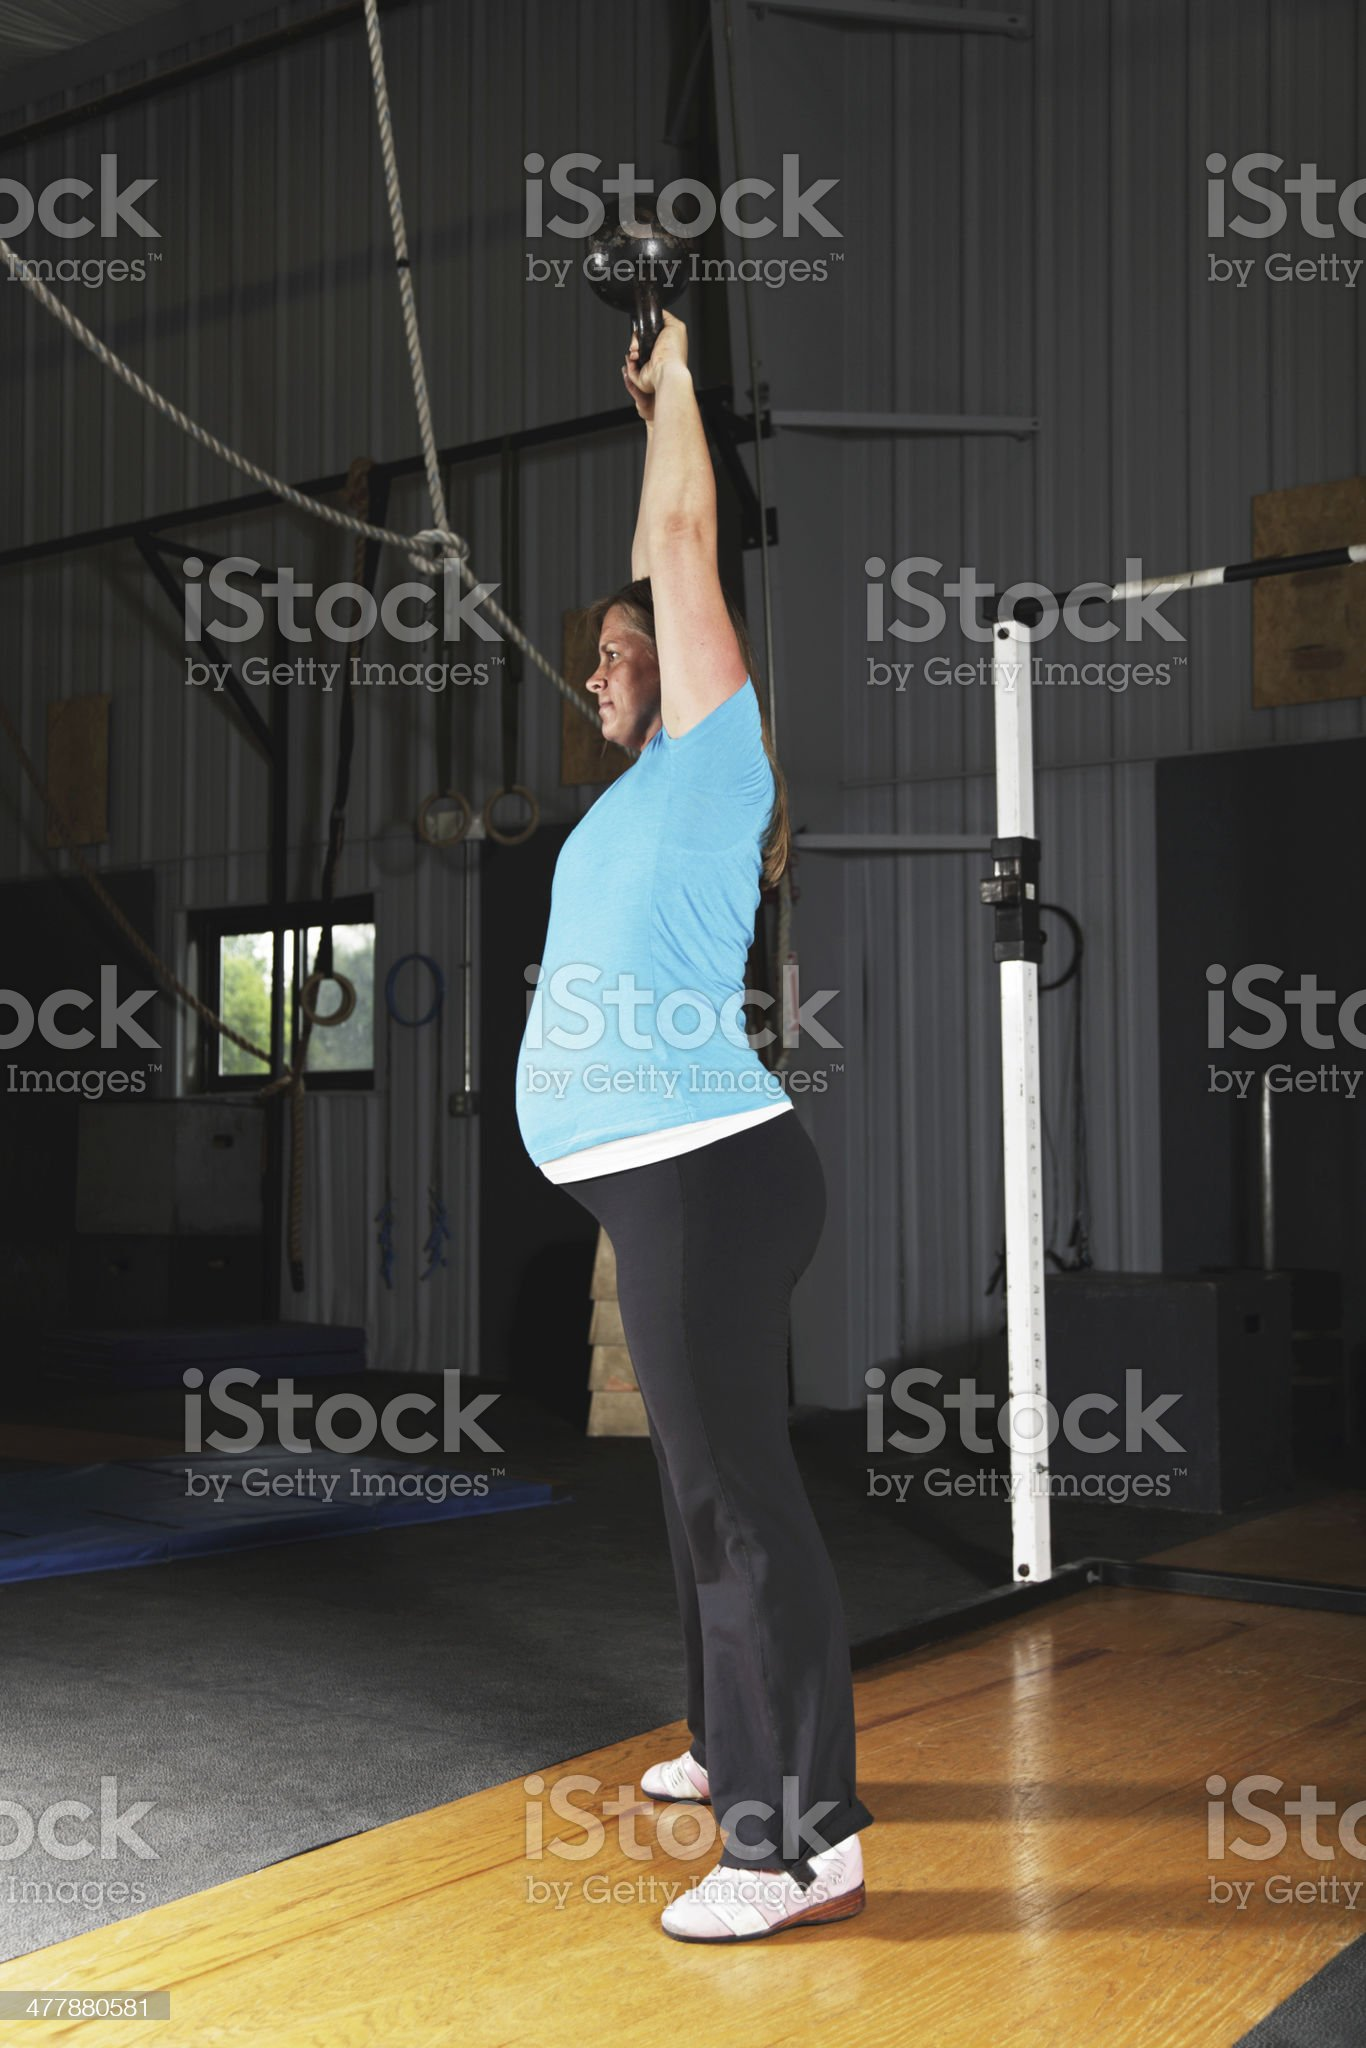 Pregnant Woman Fitness Exercise Workout Overhead Kettlebell Swing royalty-free stock photo